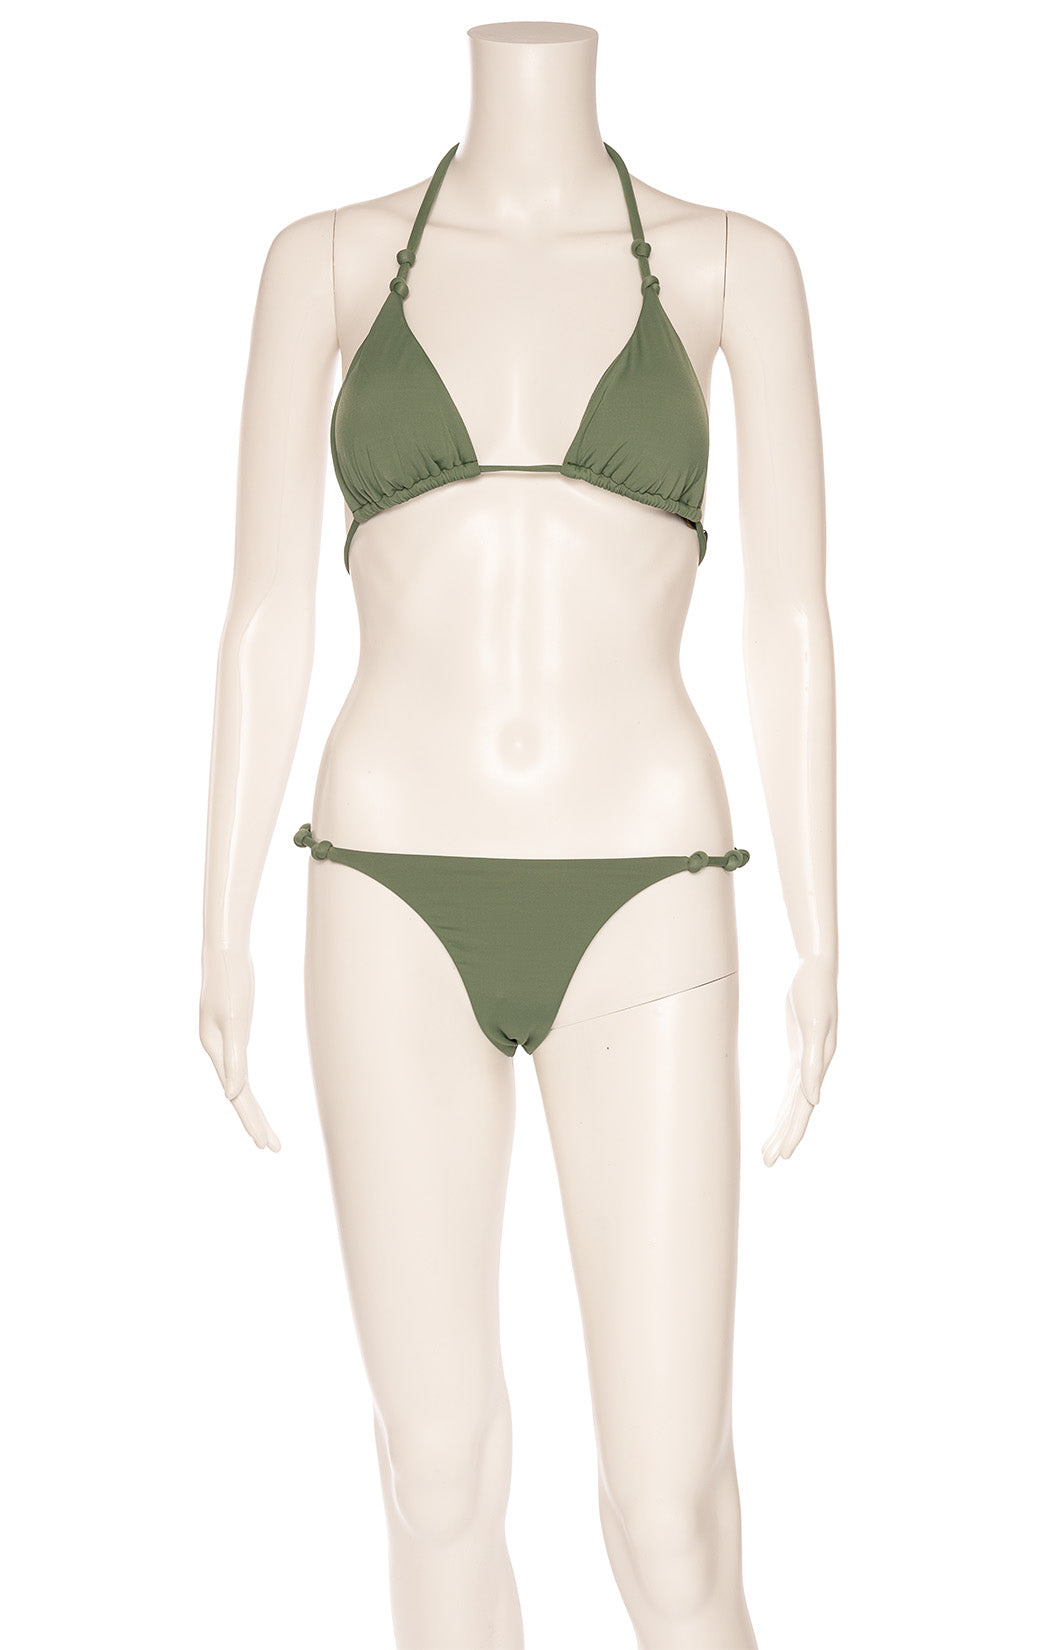 Bikini with tags  Size: Top-small, bottoms-XS